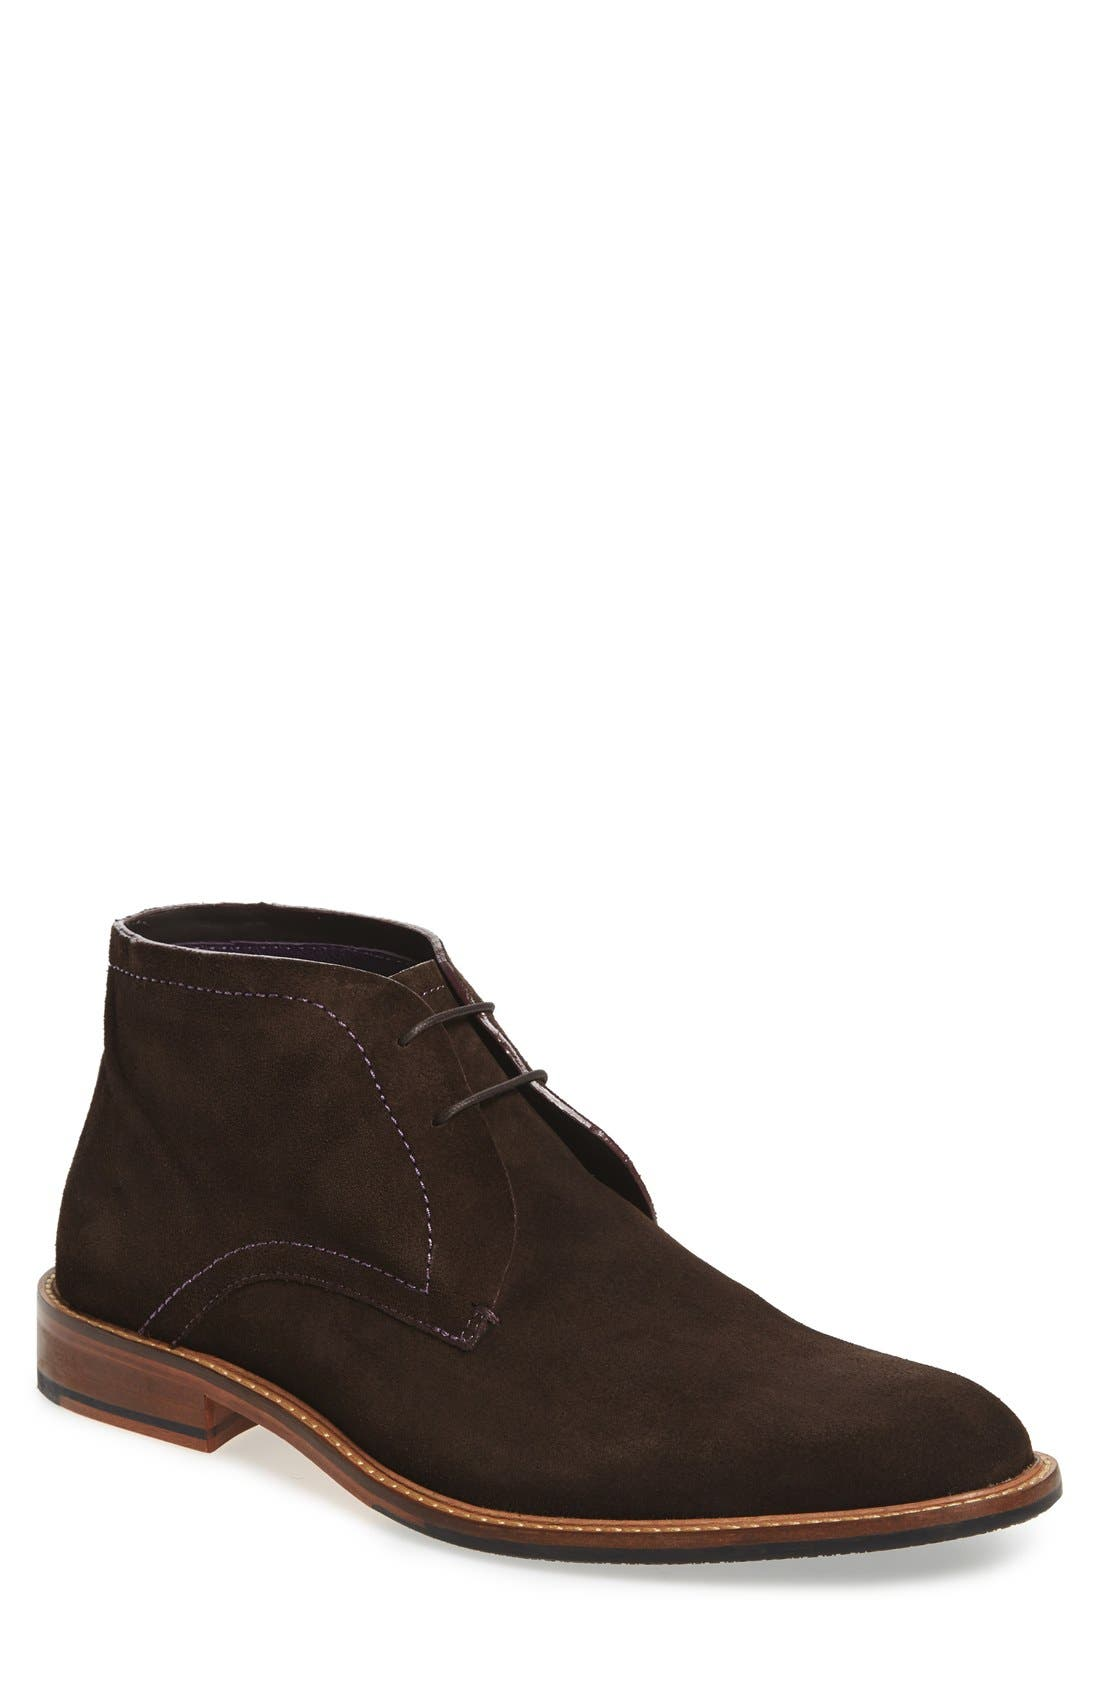 'Torsdi 4' Chukka Boot,                             Main thumbnail 4, color,